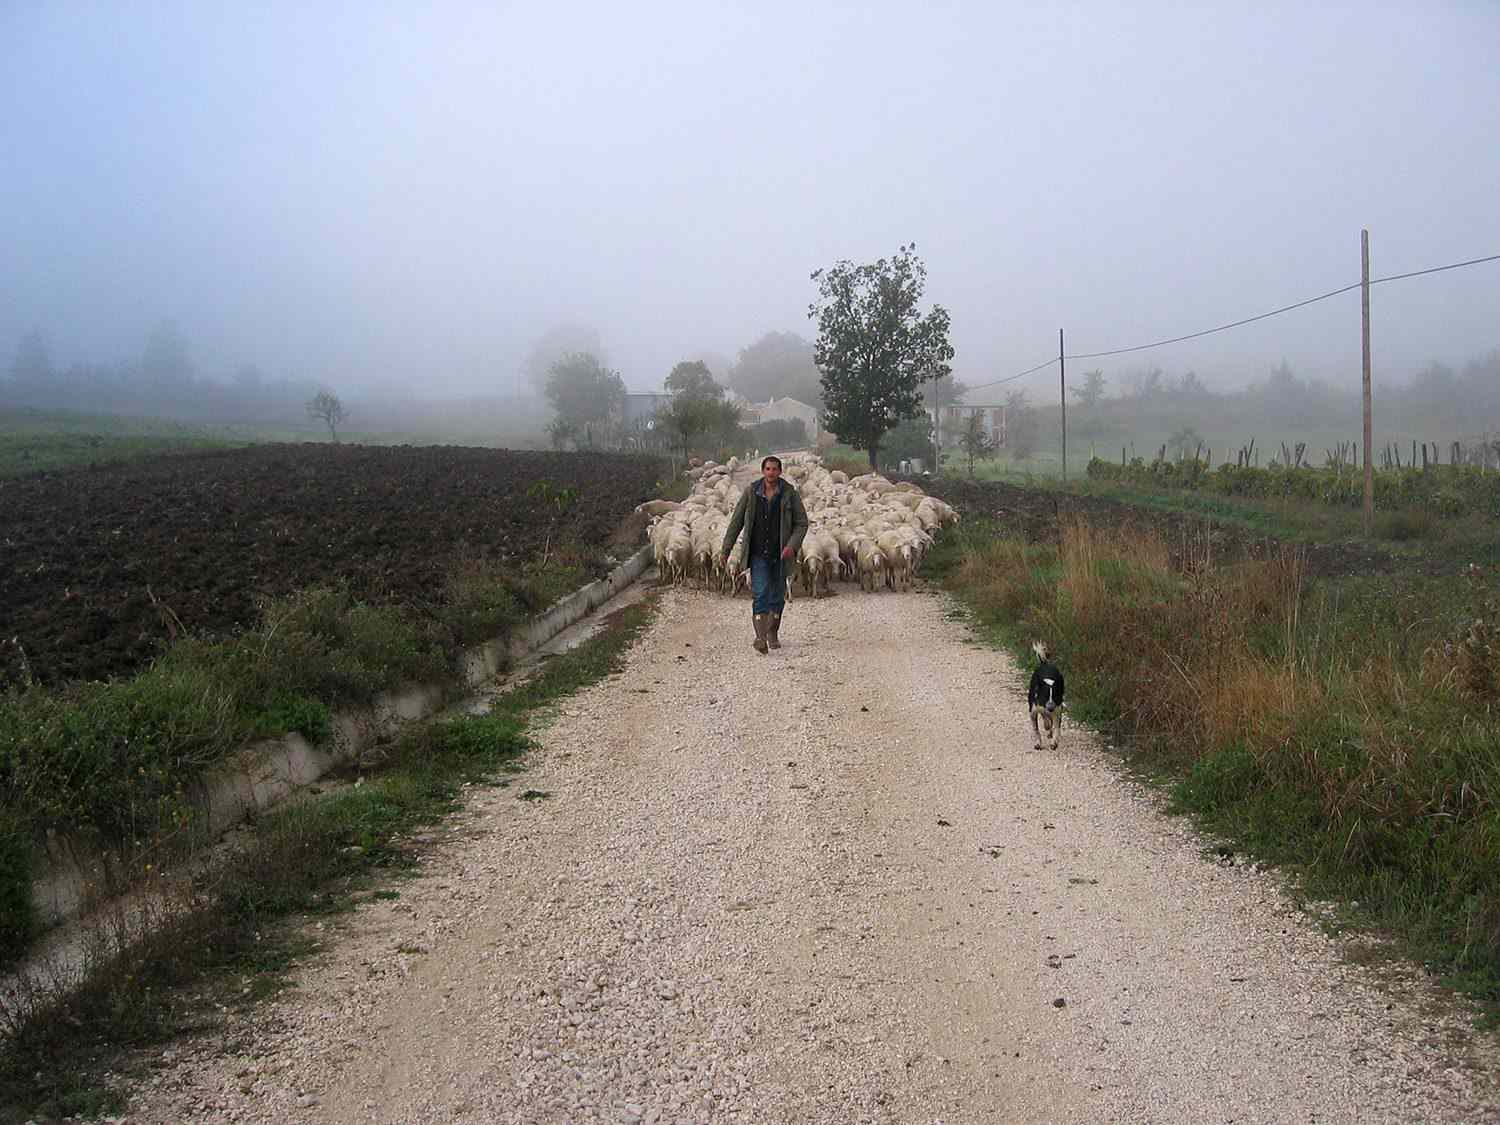 A man walking down a dirt and gravel path, with a dog walking before him and a herd of sheep behind